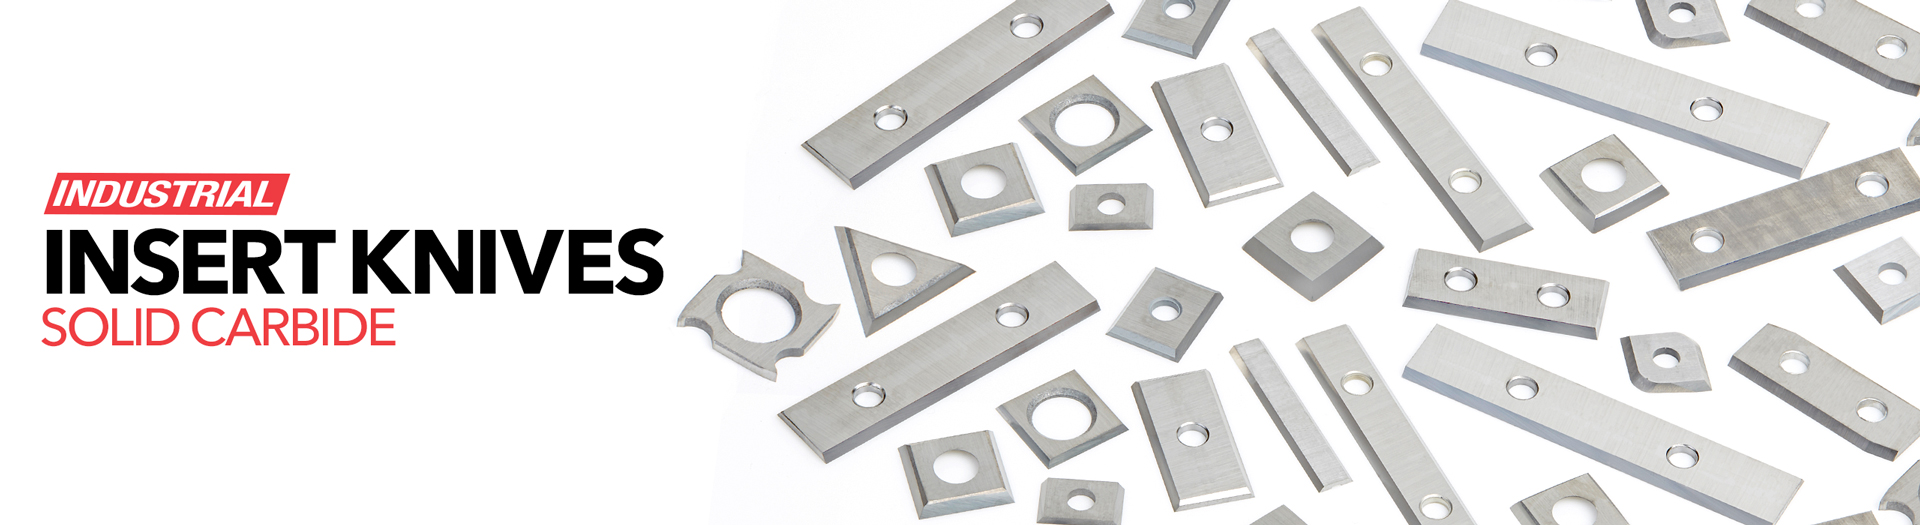 Solid Carbide Insert Knives Cnc Router Bits Industrial